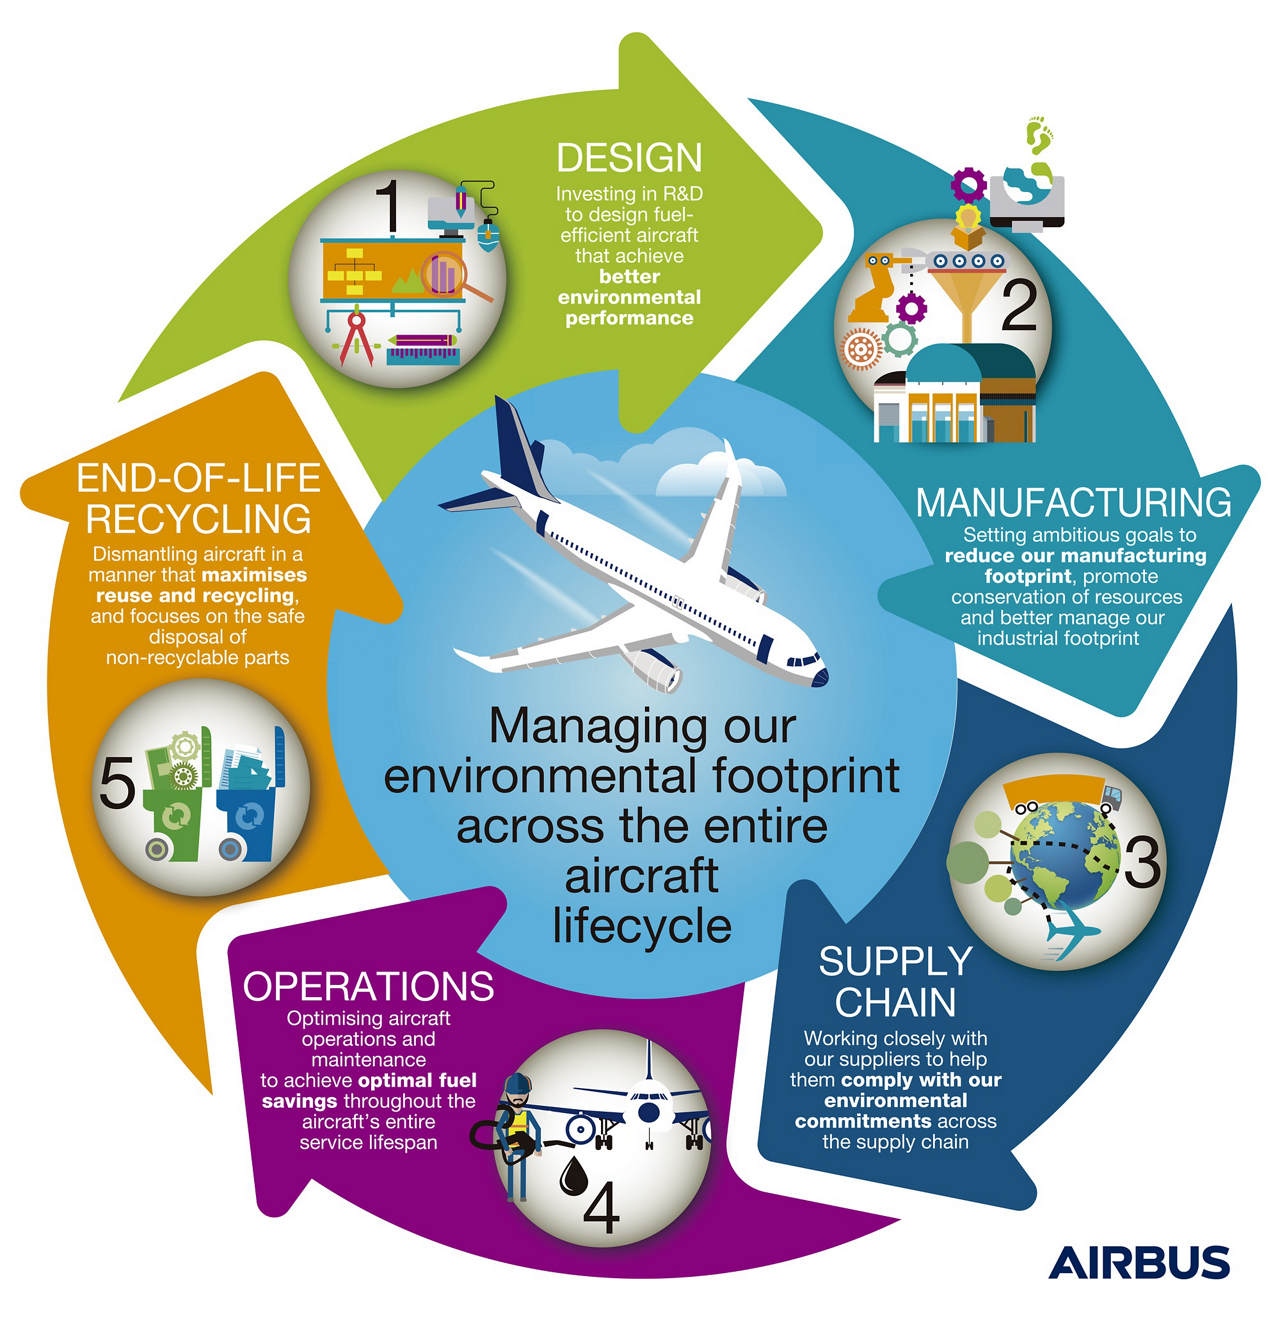 An infographic showing the different steps in Airbus' lifecycle approach to product development.